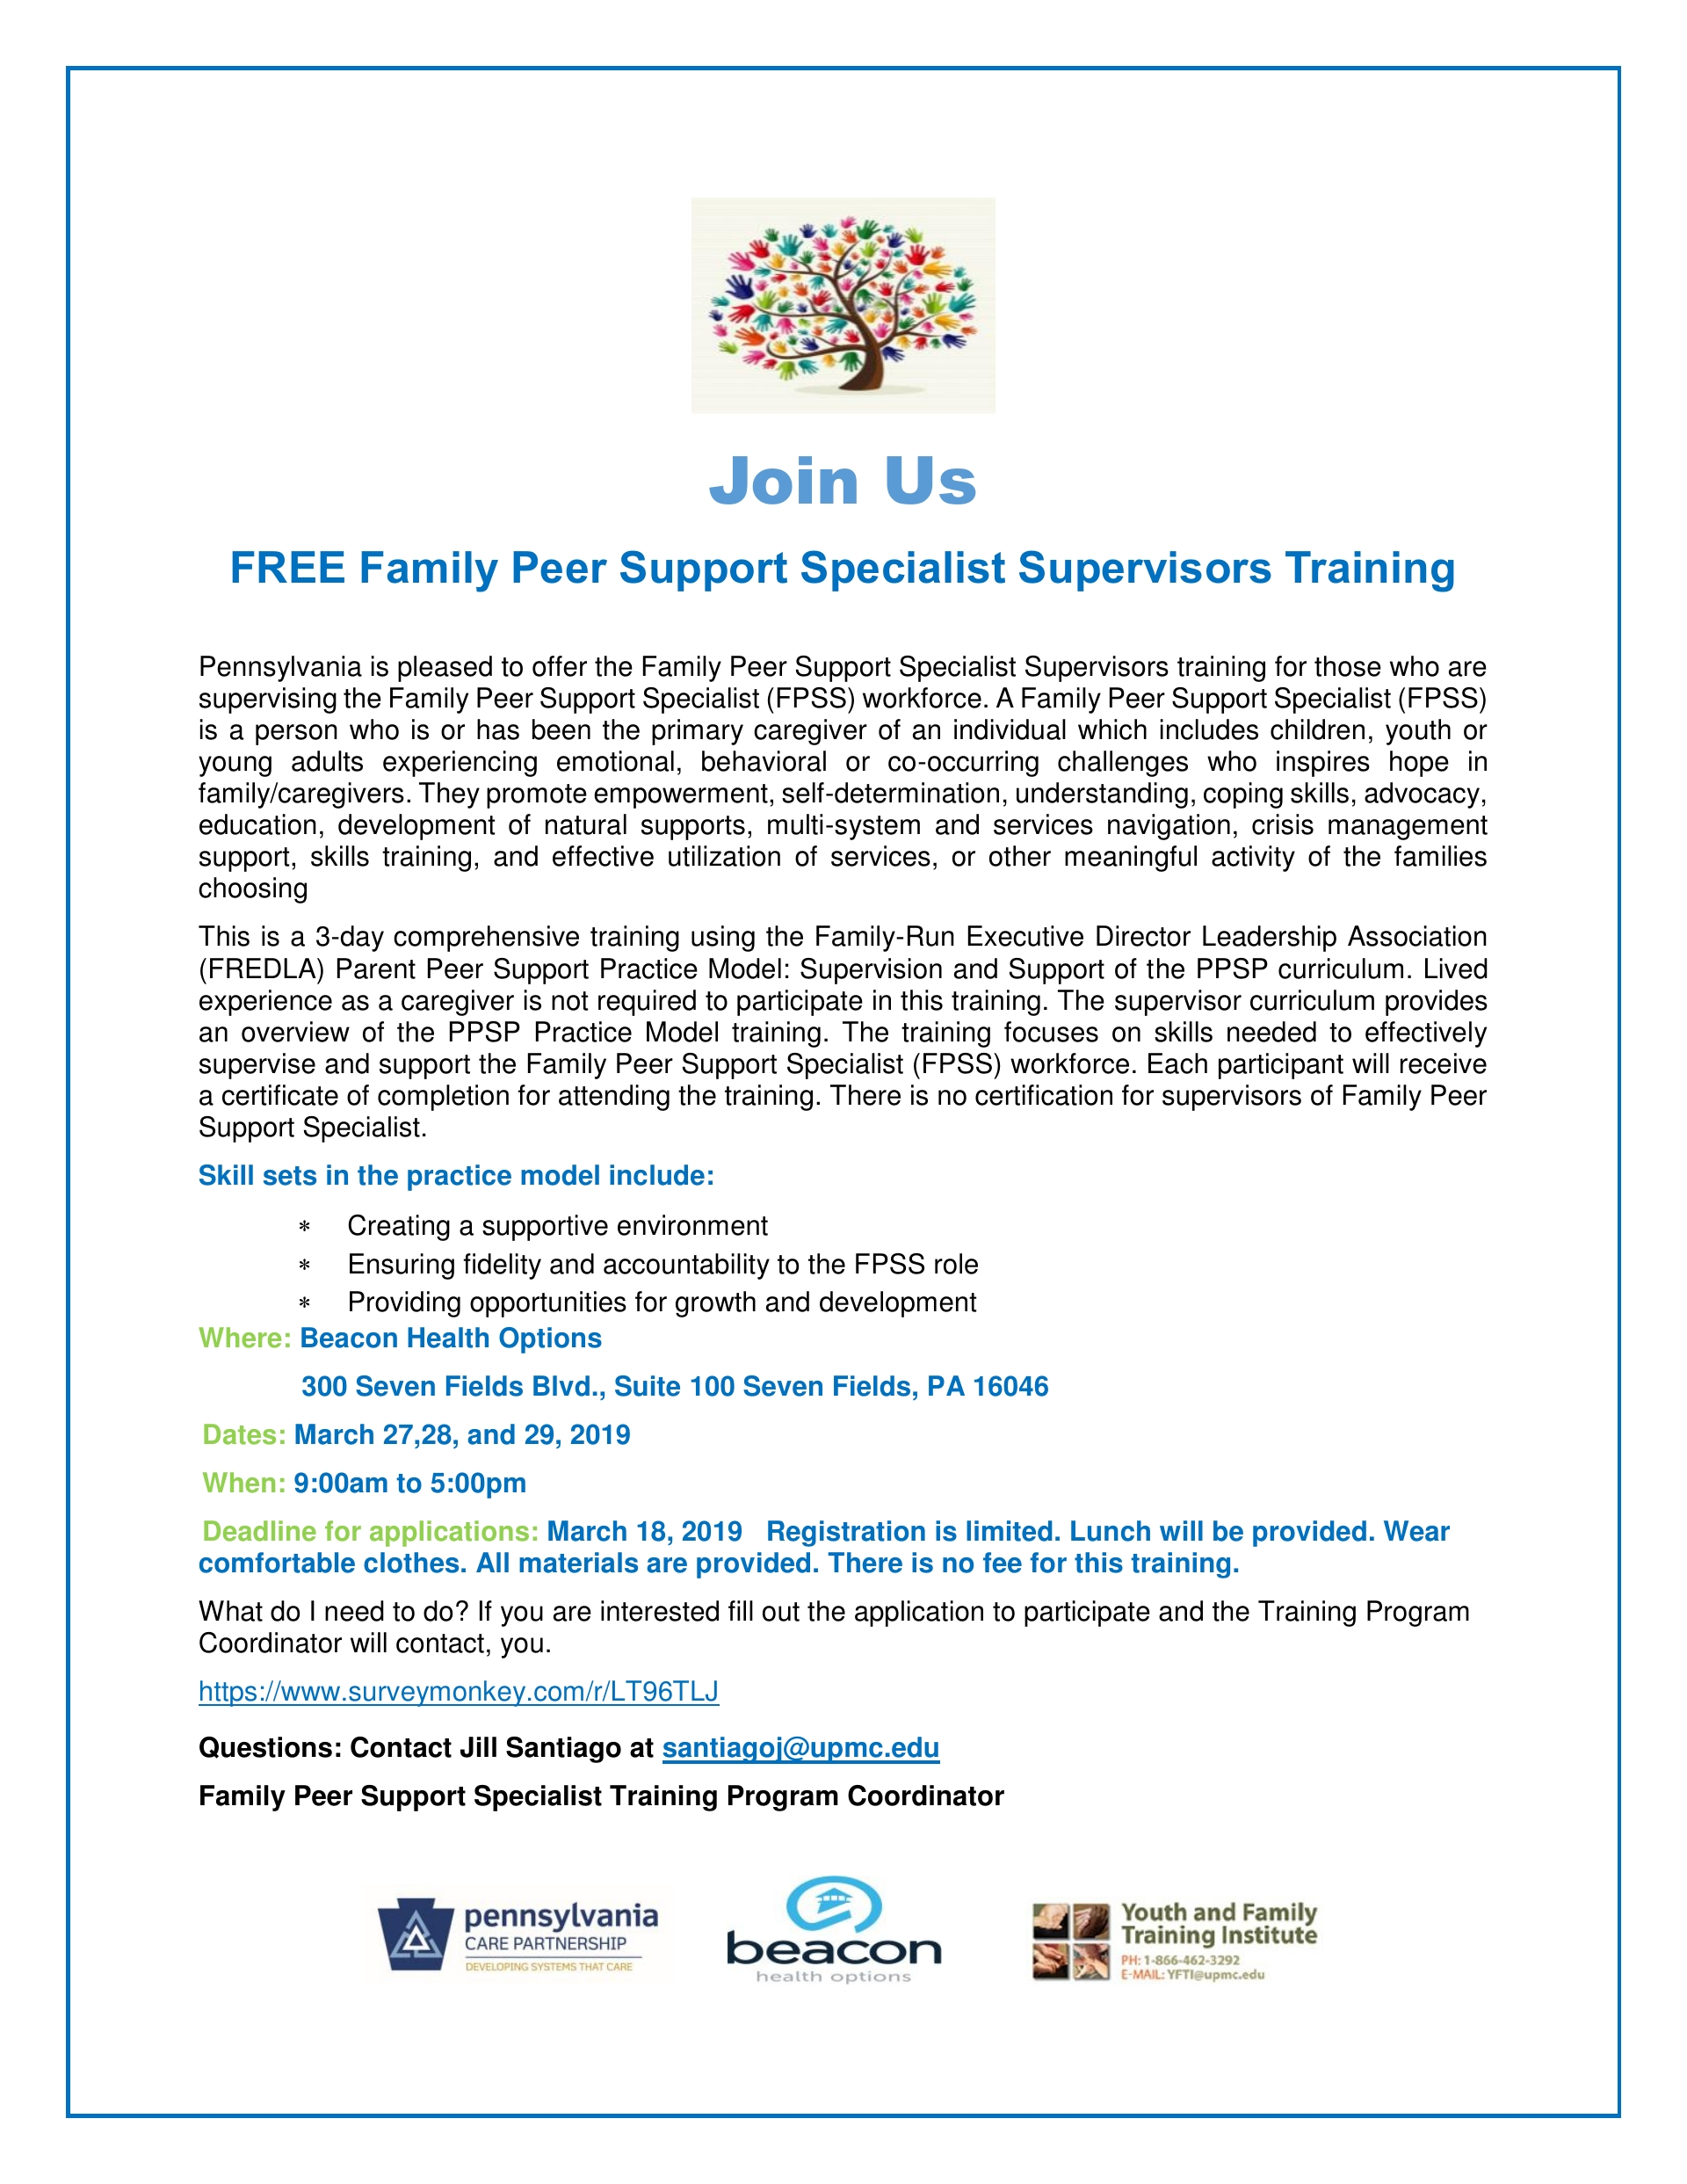 FREE Family Peer Support Specialist Supervisors Training   CRANBERRY TWP, PA